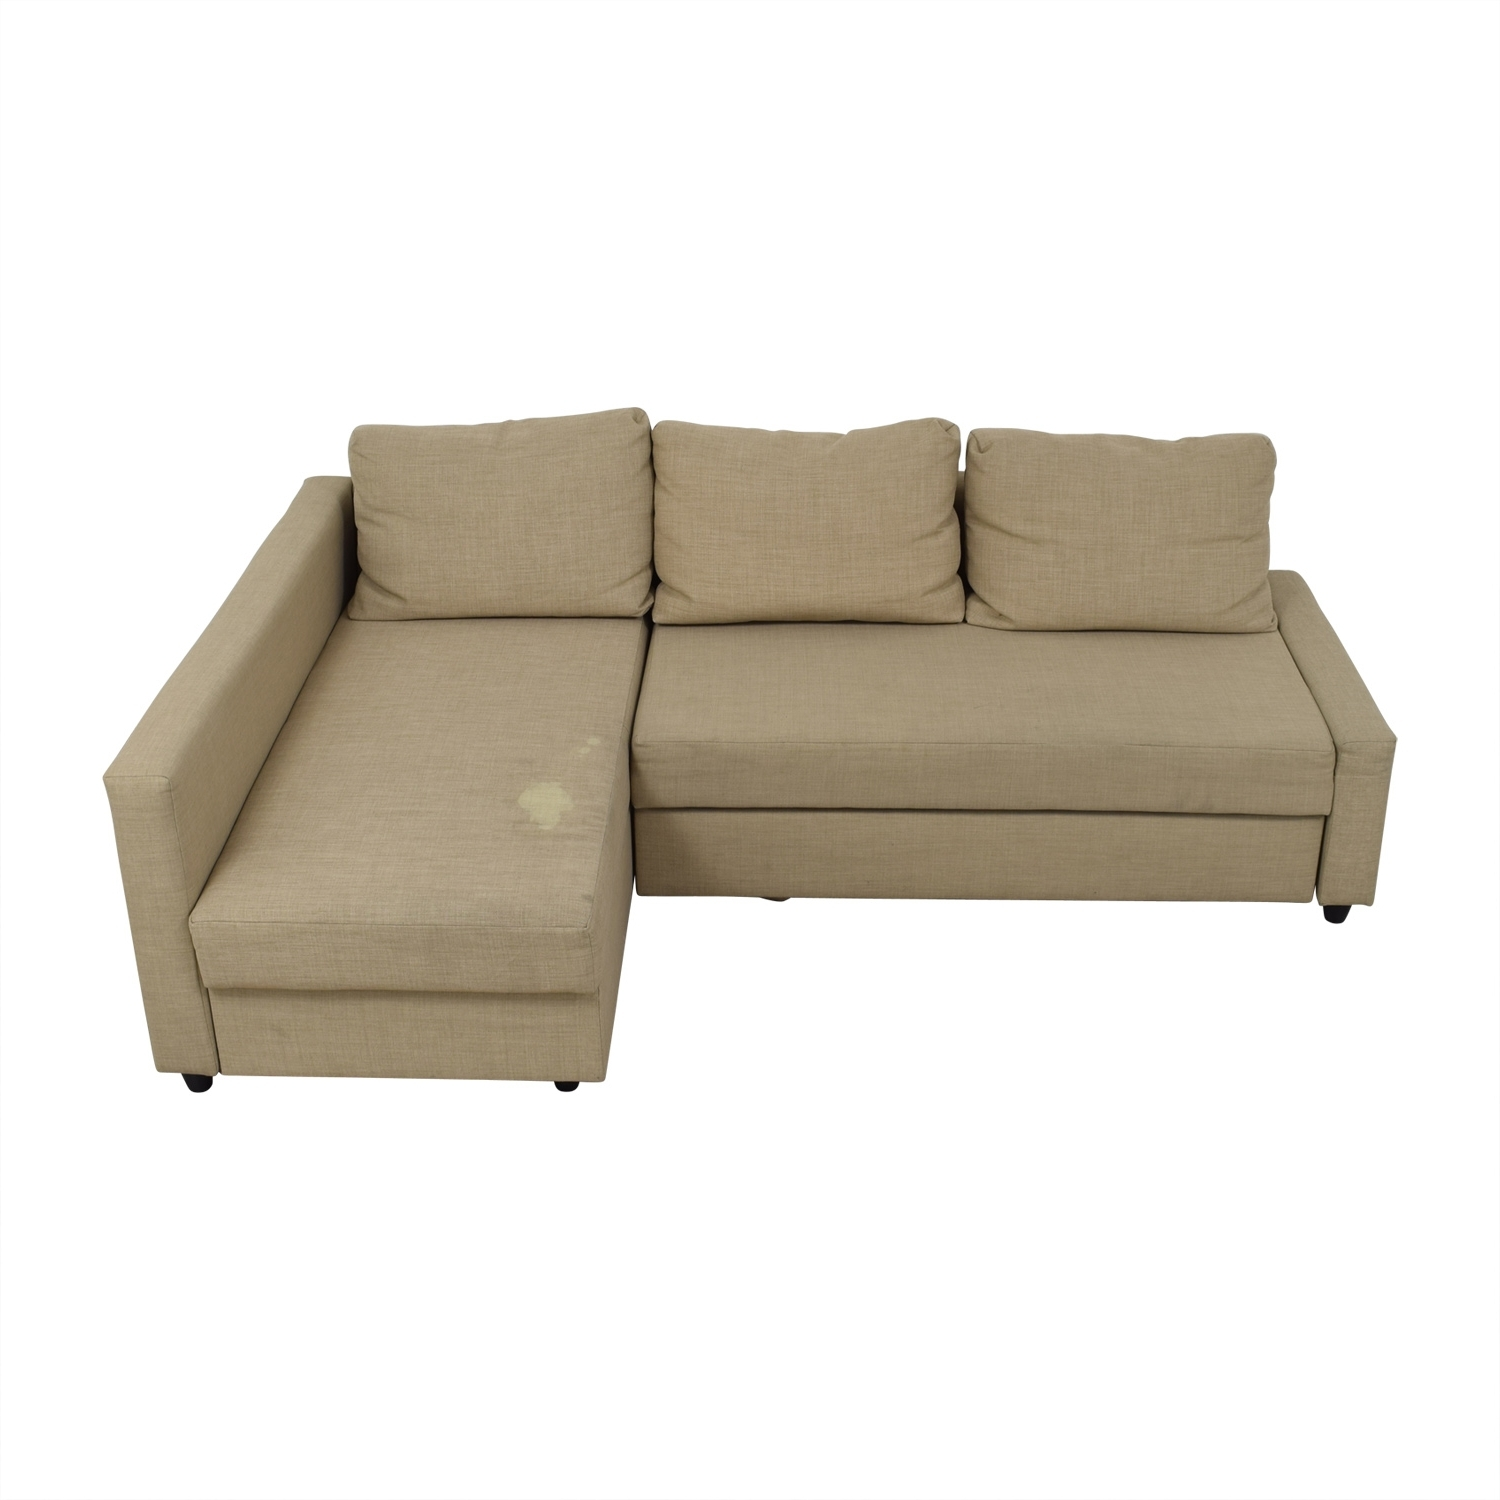 Sectionals: Used Sectionals For Sale With Regard To Most Recent Used Sectional Sofas (View 10 of 15)